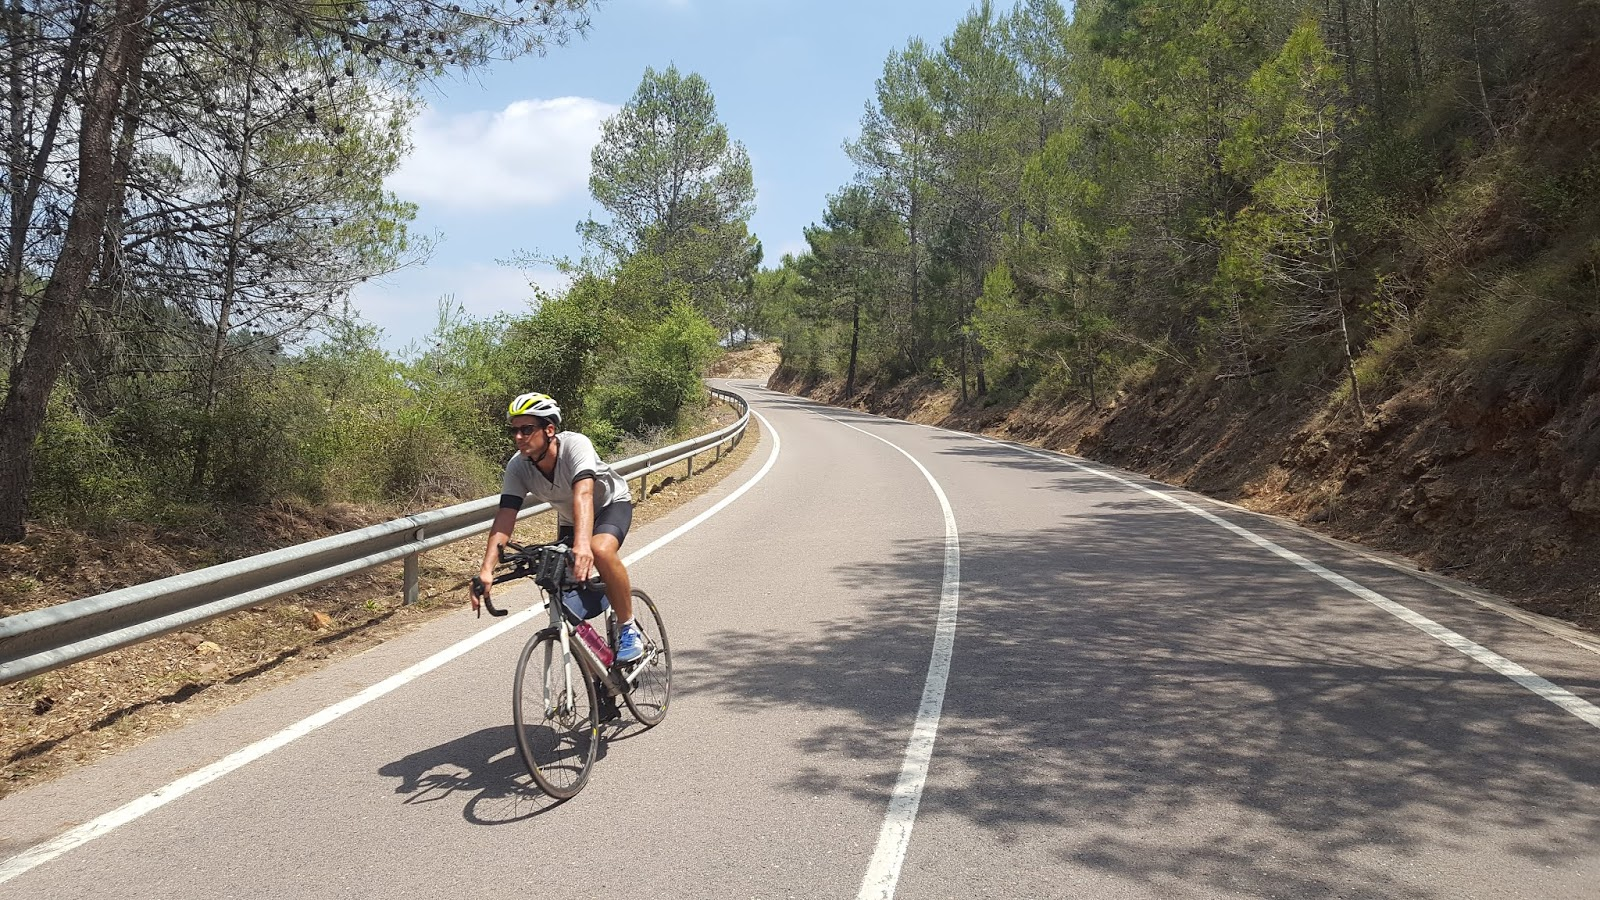 Cycling in the mountains of Valencia, Spain